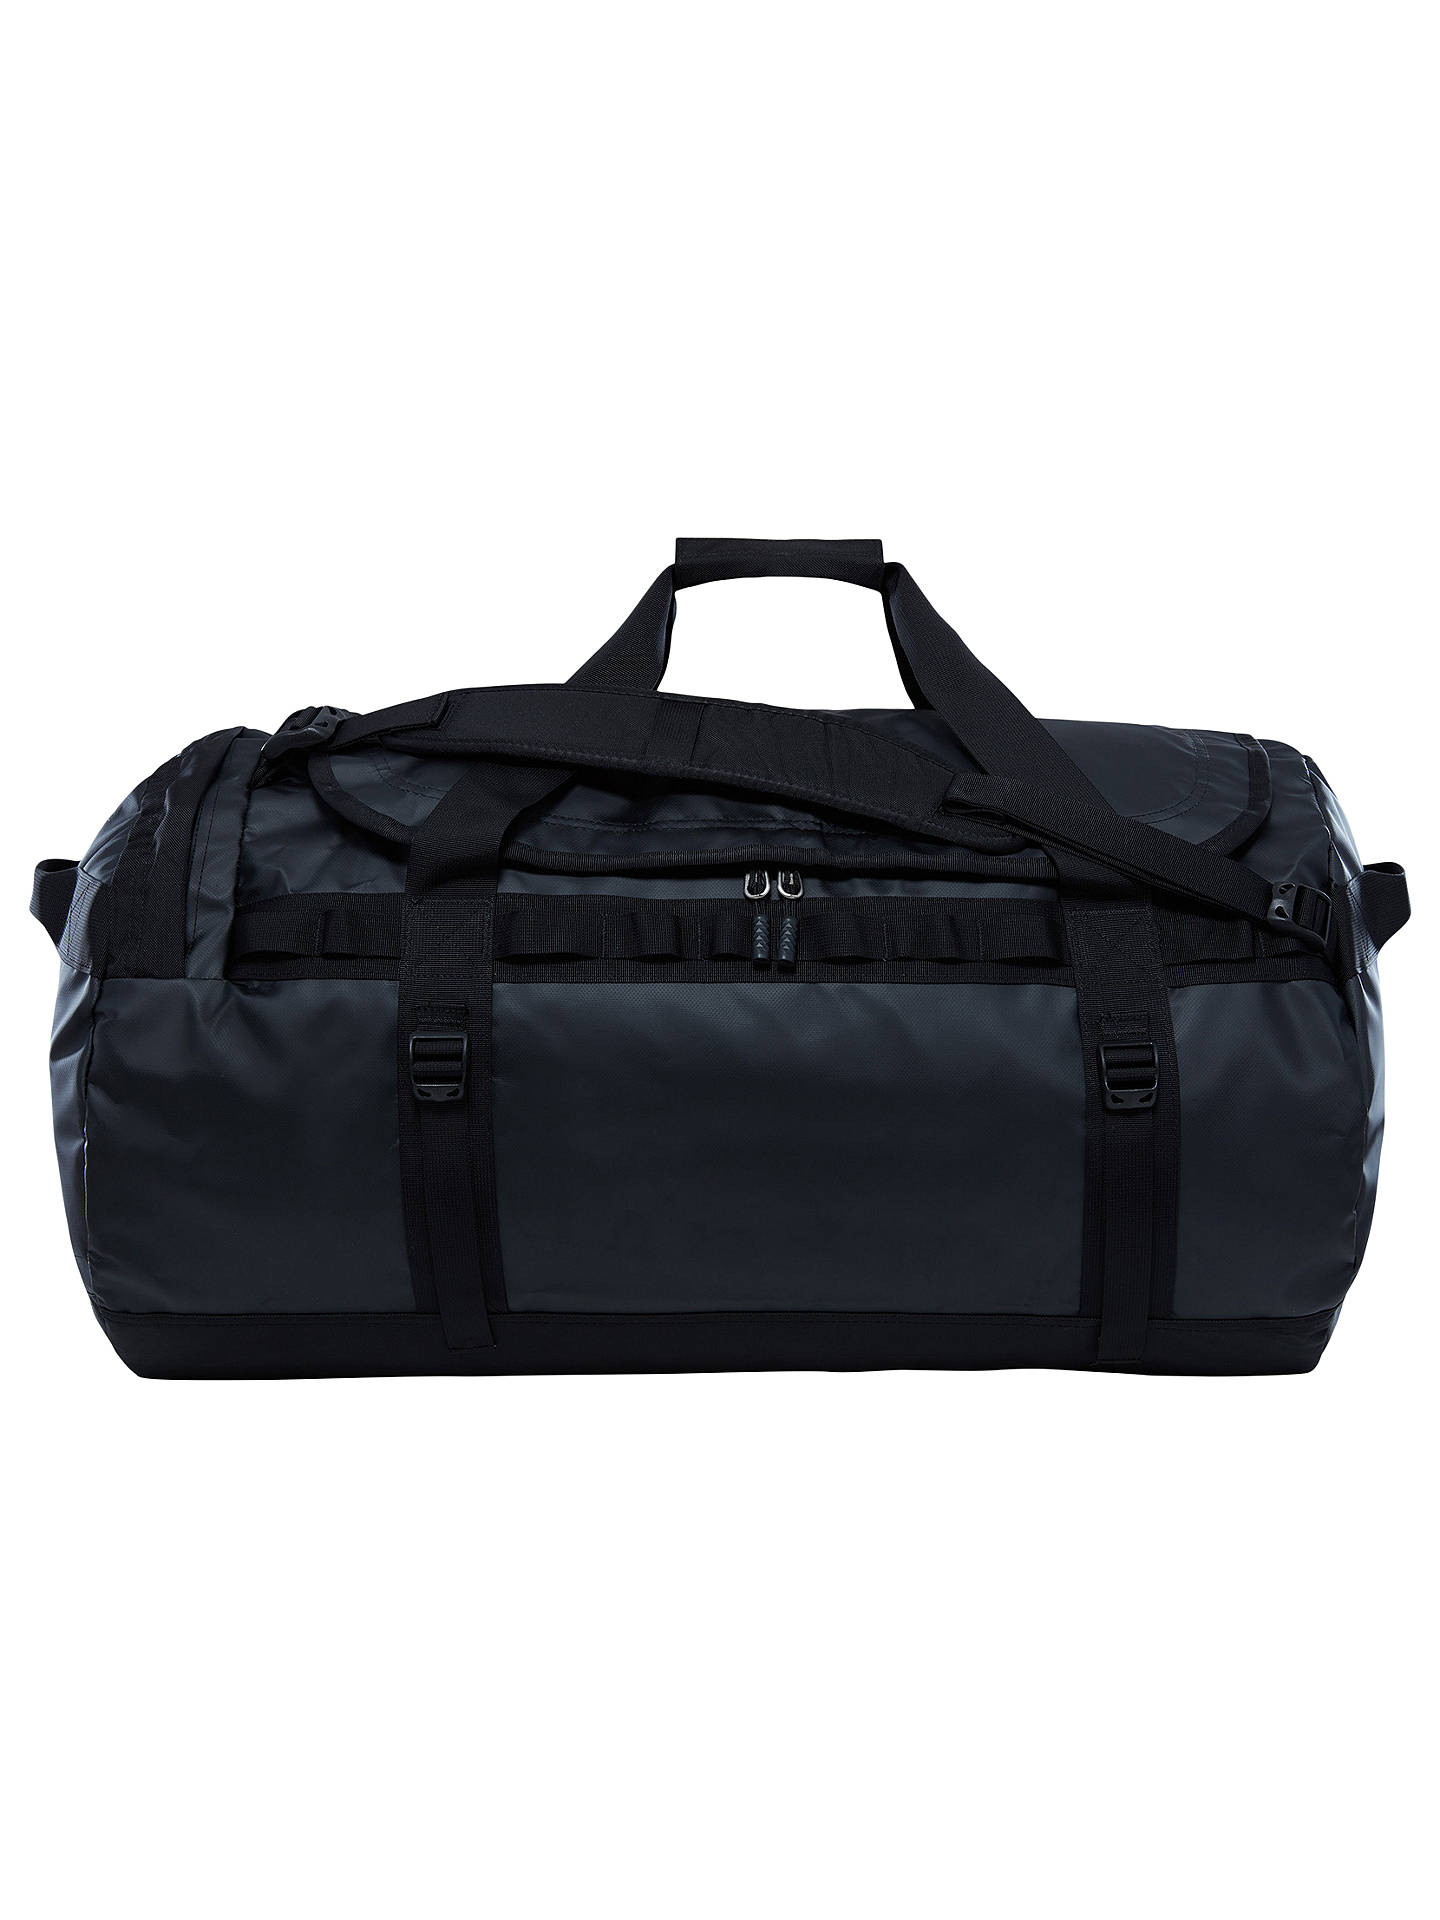 Buy The North Face Base Camp Duffle Bag, Large, Black Online at johnlewis.com